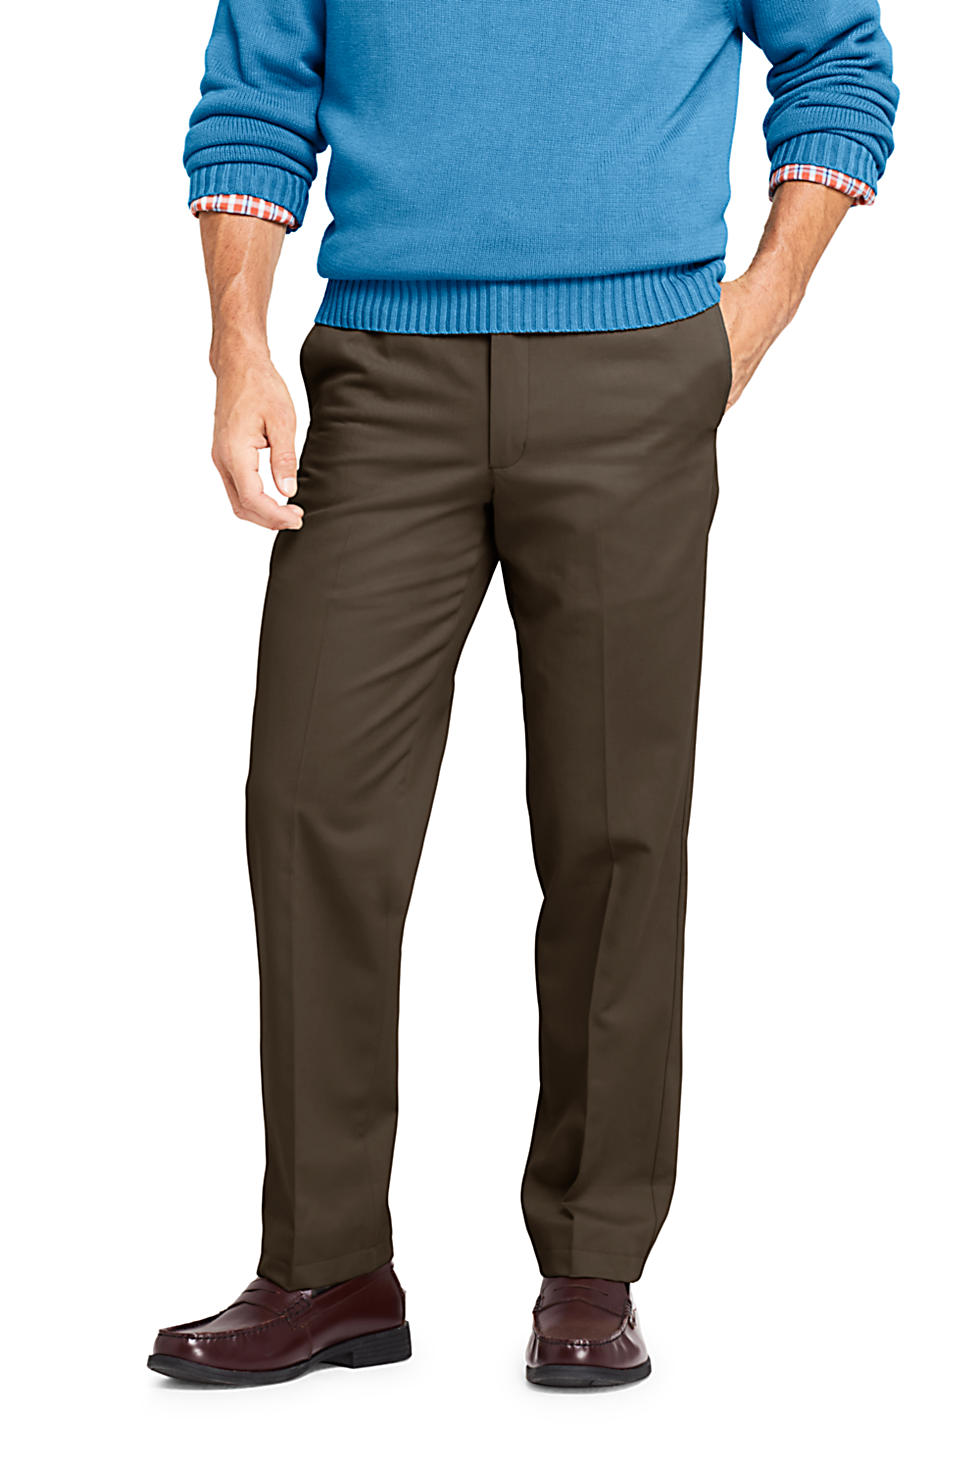 Lands End Mens Comfort Waist No Iron Chinos (various colors/sizes)